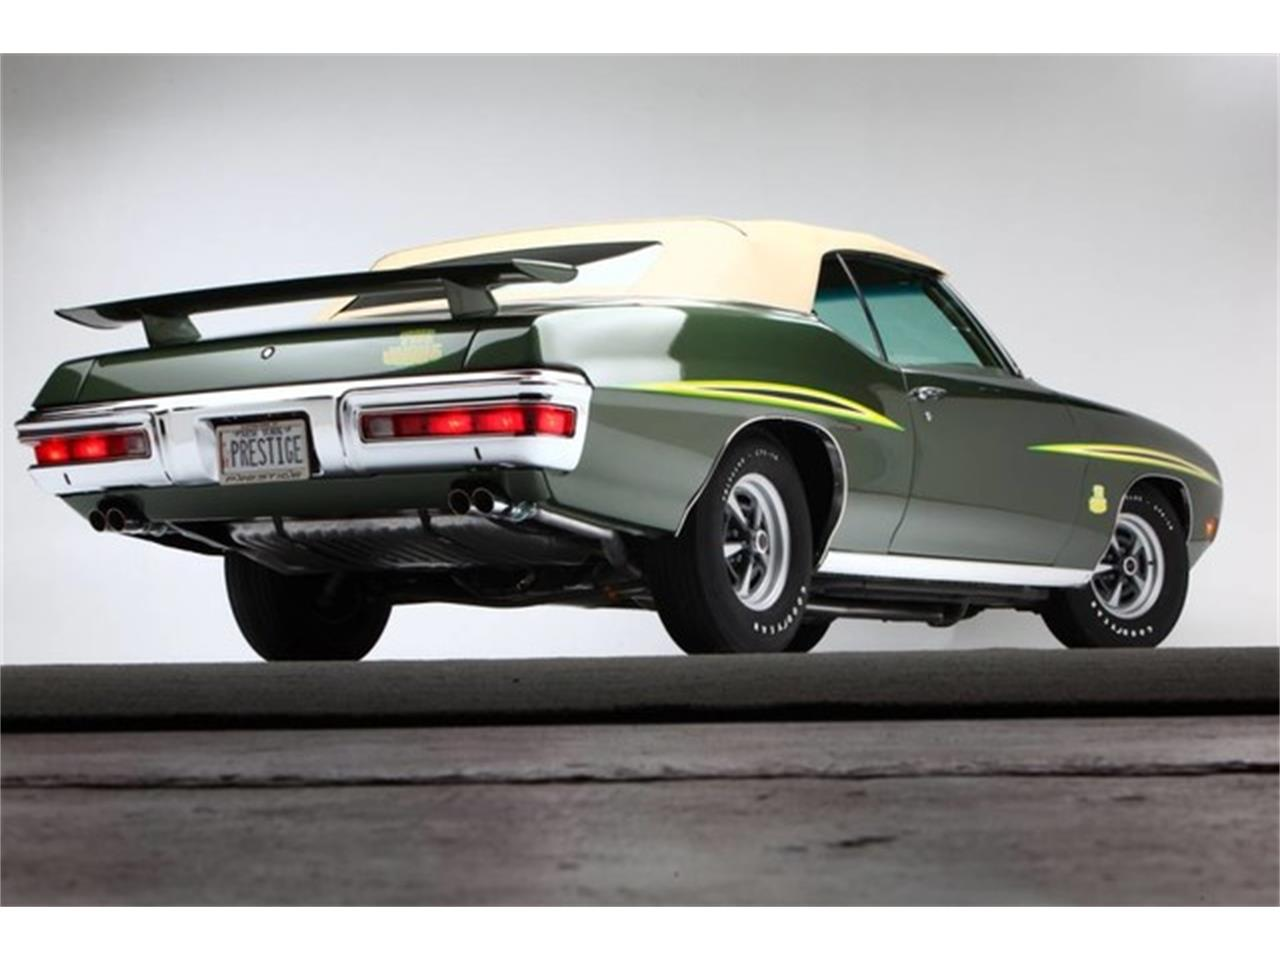 Large Picture of '70 GTO (The Judge) - $219,000.00 Offered by Prestige Motor Car Co. - PU25